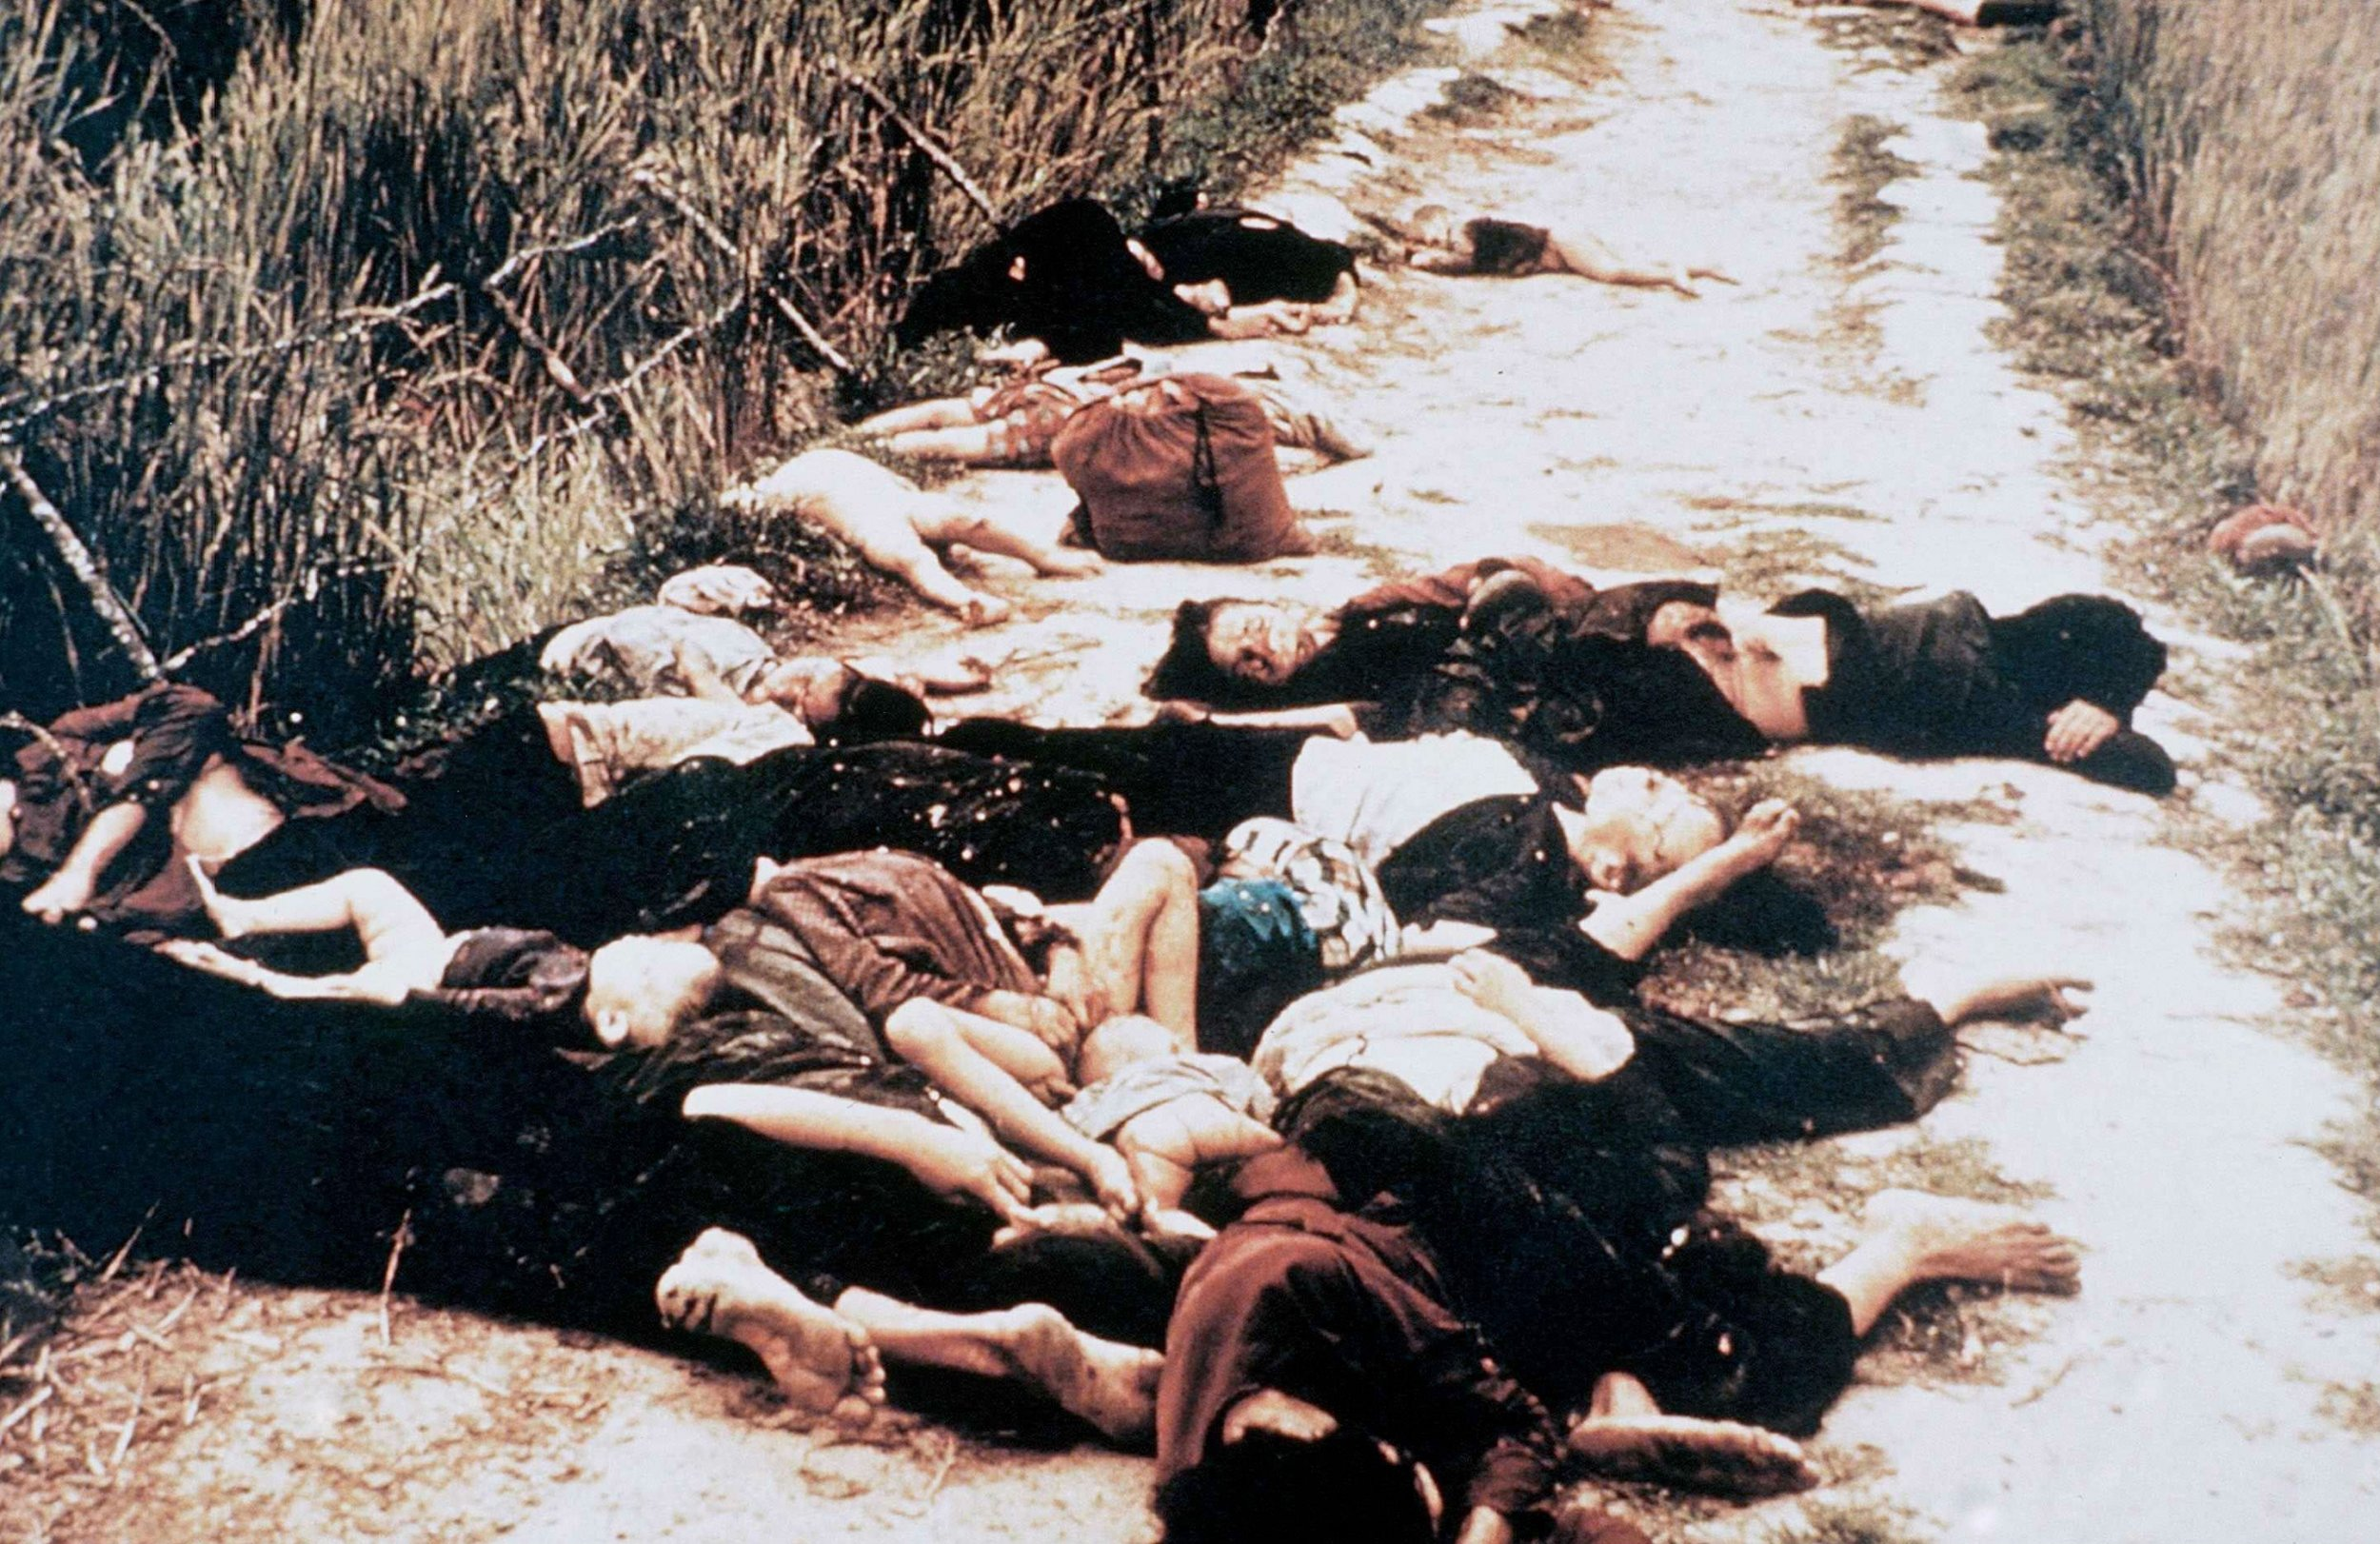 essay on my lai massacre Pfc capezza shown setting a fire during the my lai massacre,  led into an  essay that explores my lai in the context of atrocities in other wars.